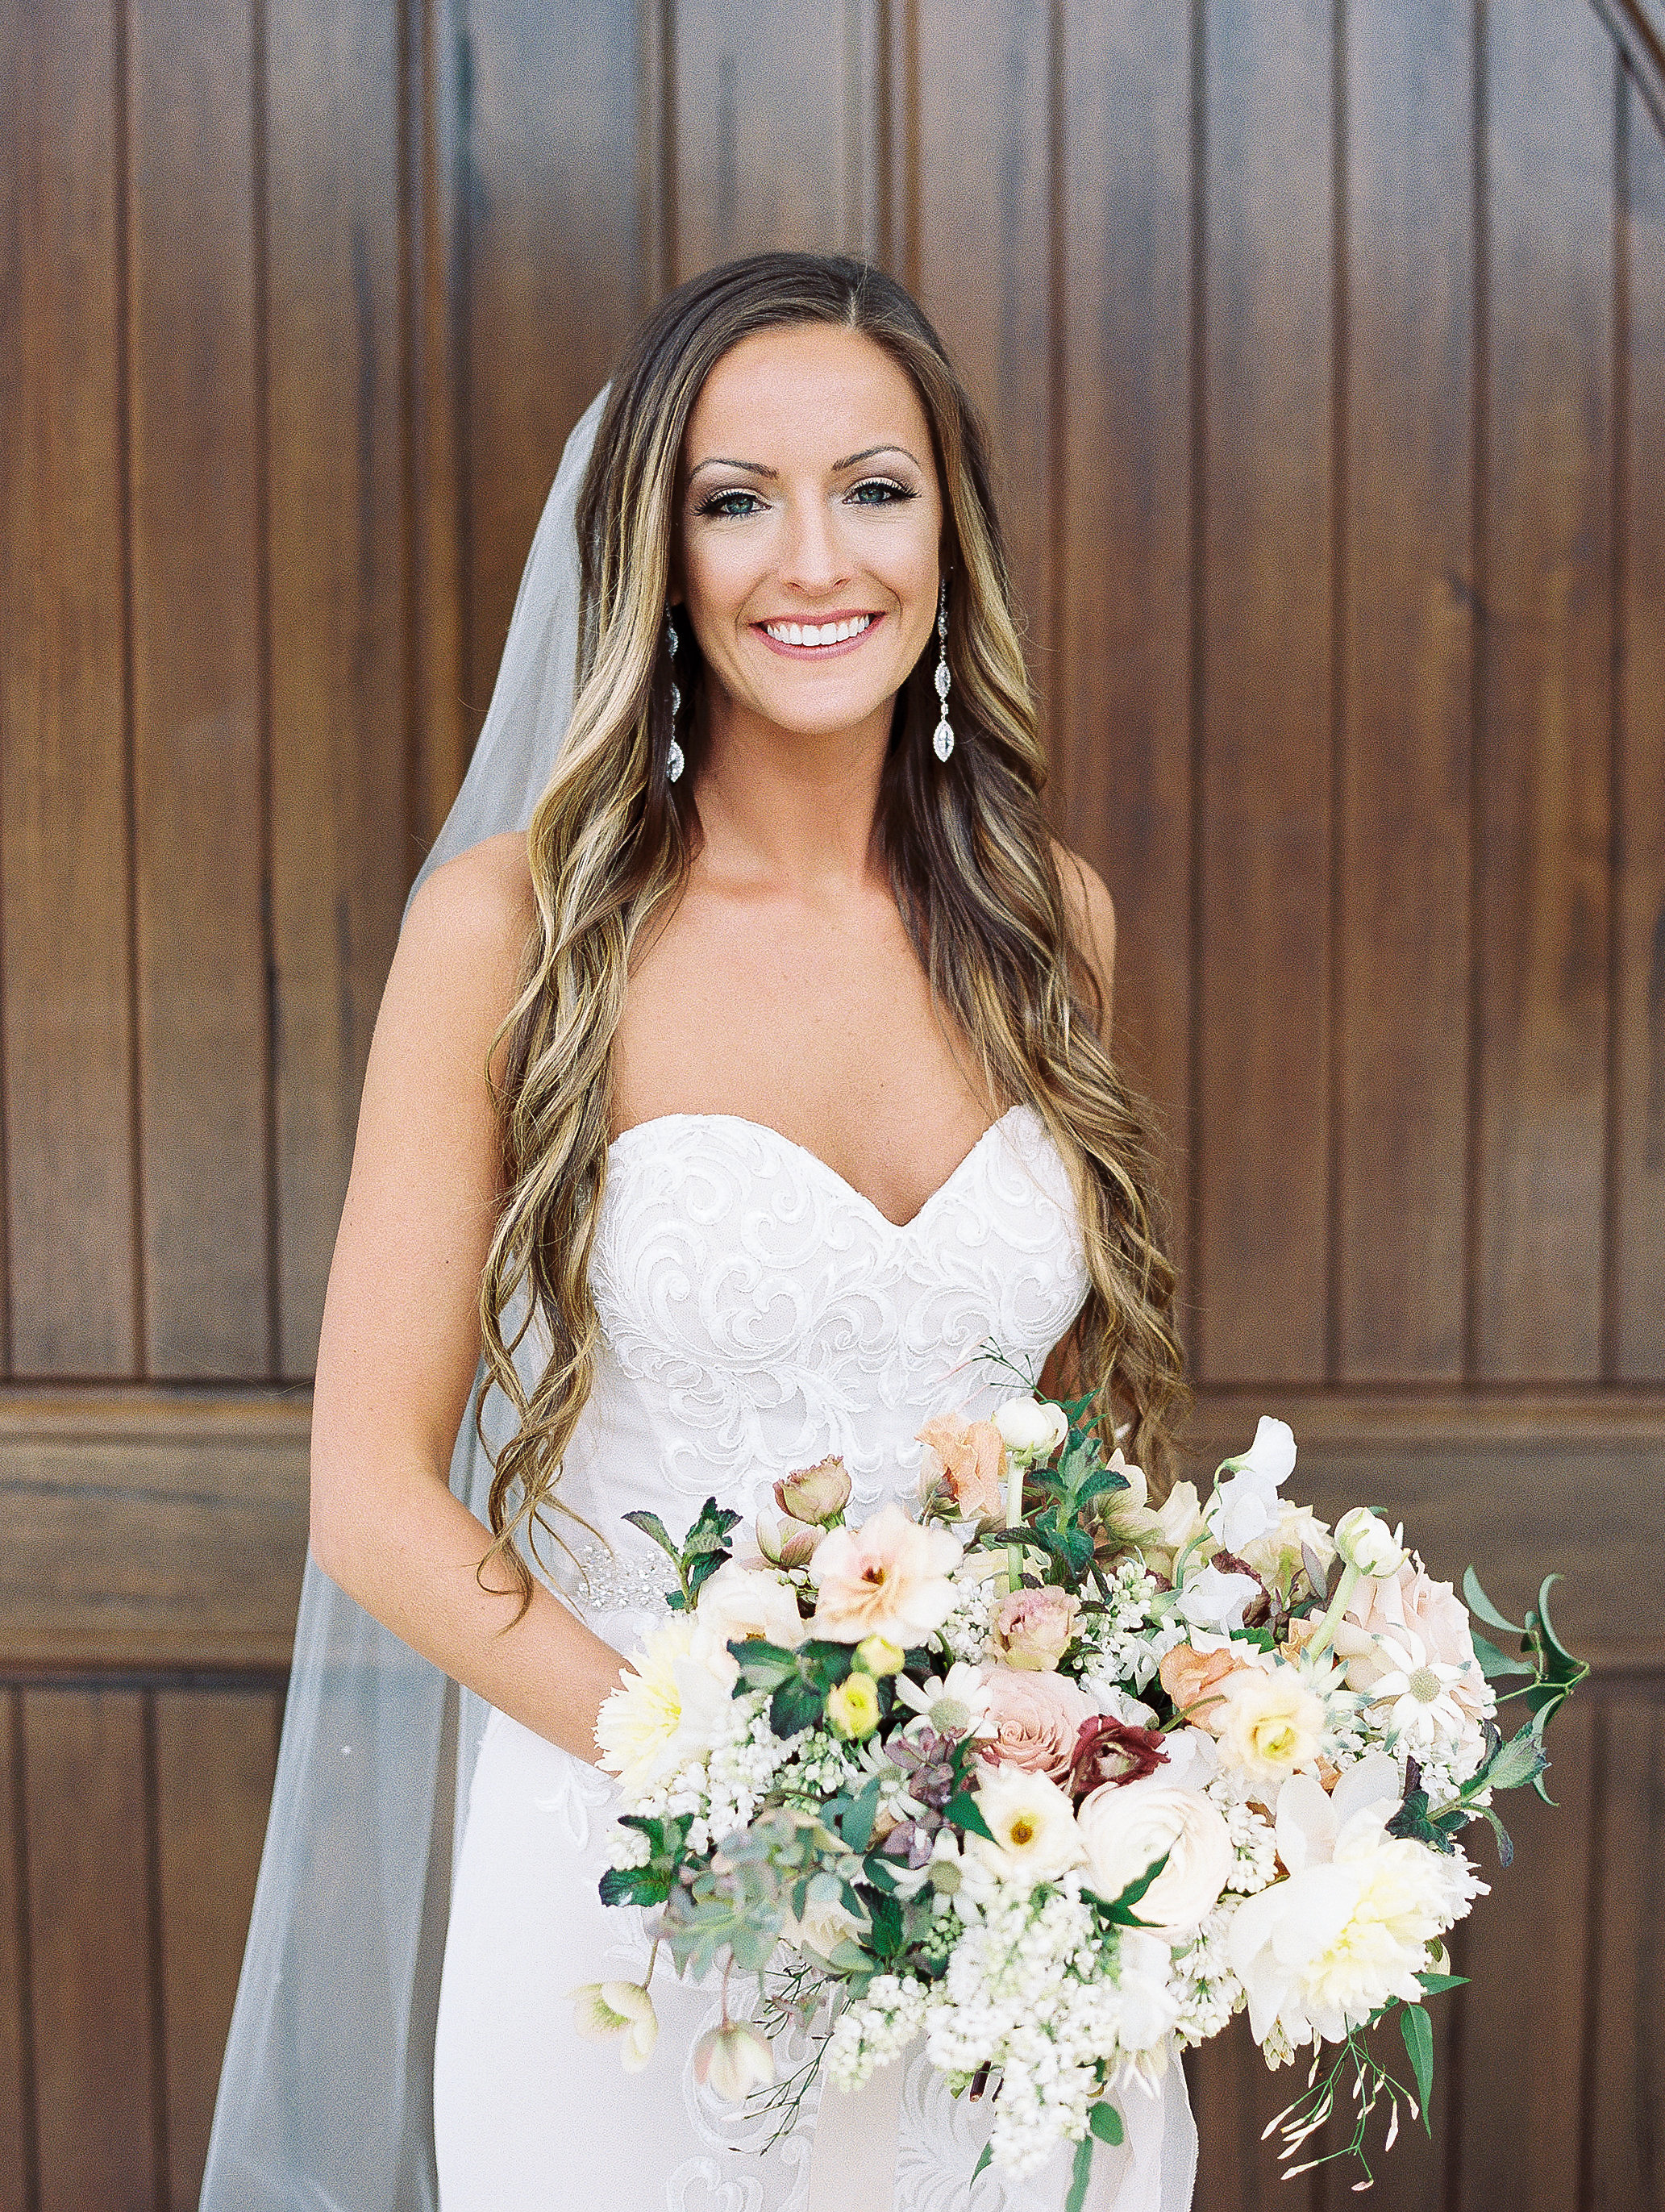 jessica-zimmerman-floral-wedding-bridal-bouquet.jpg